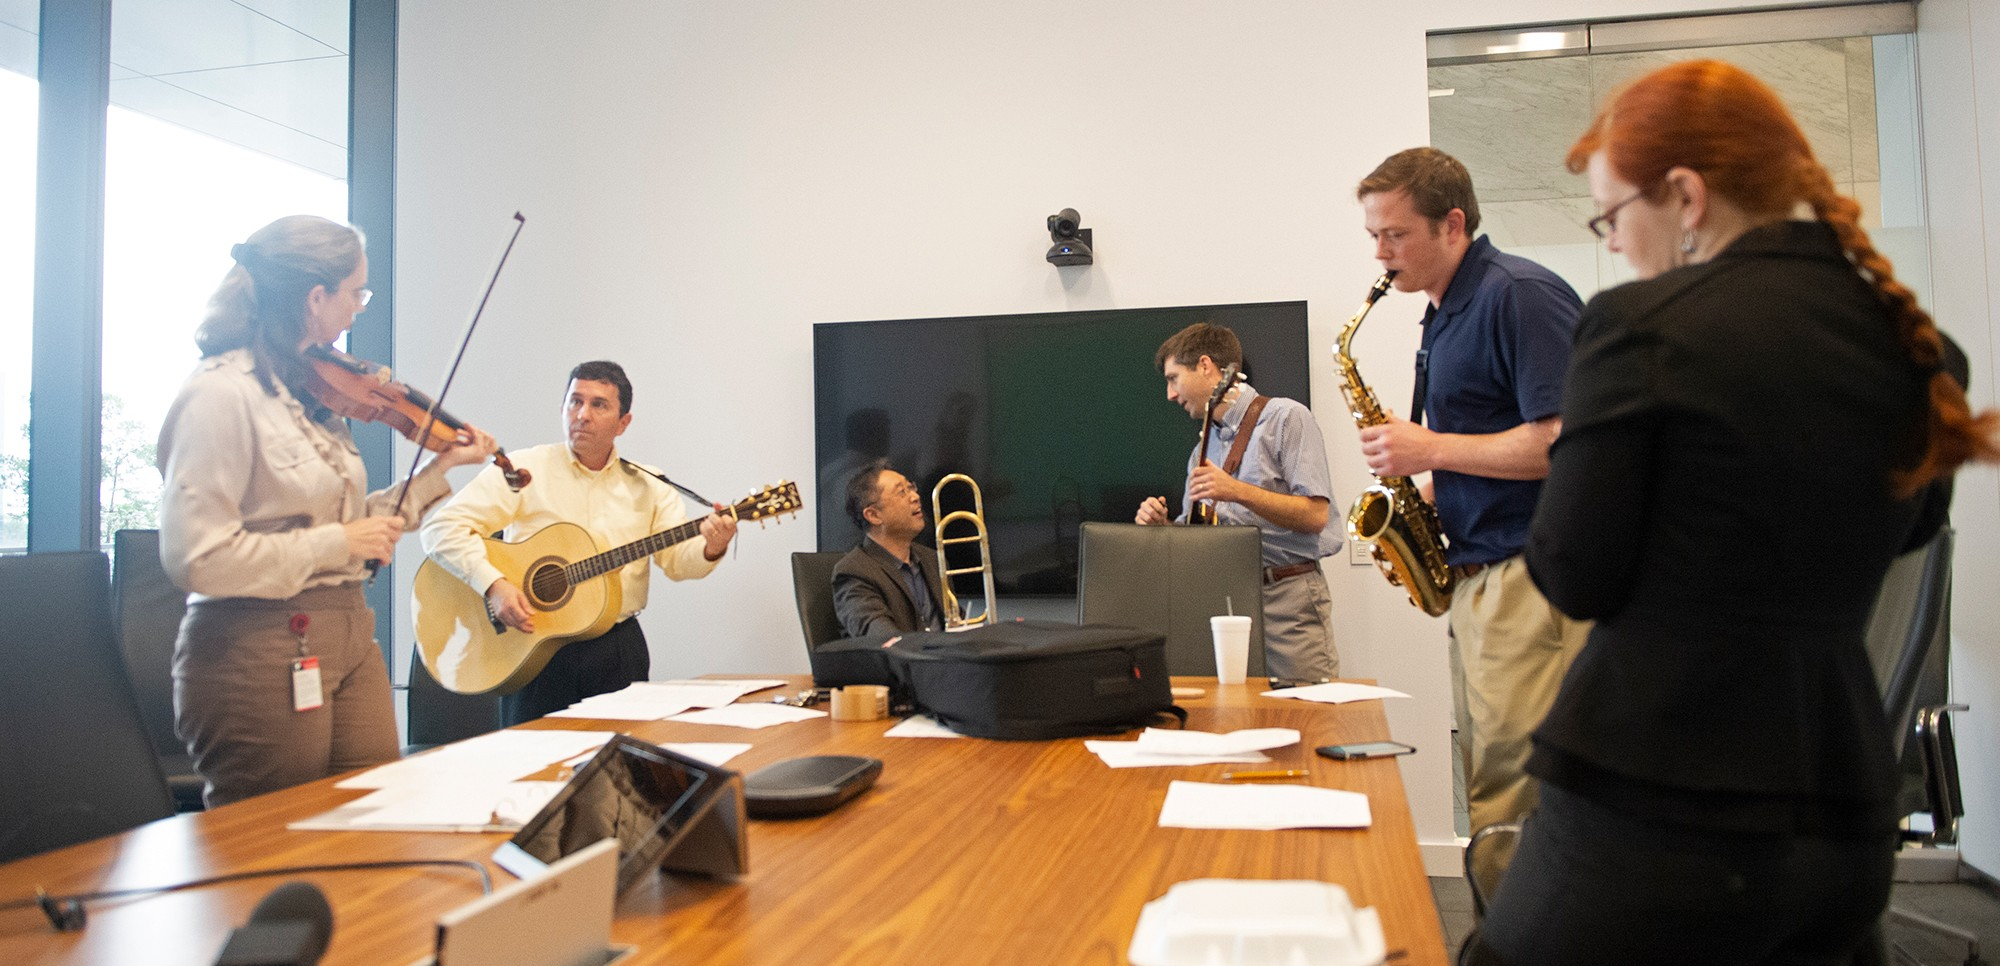 employees gathered around conference table holding instruments and reading music